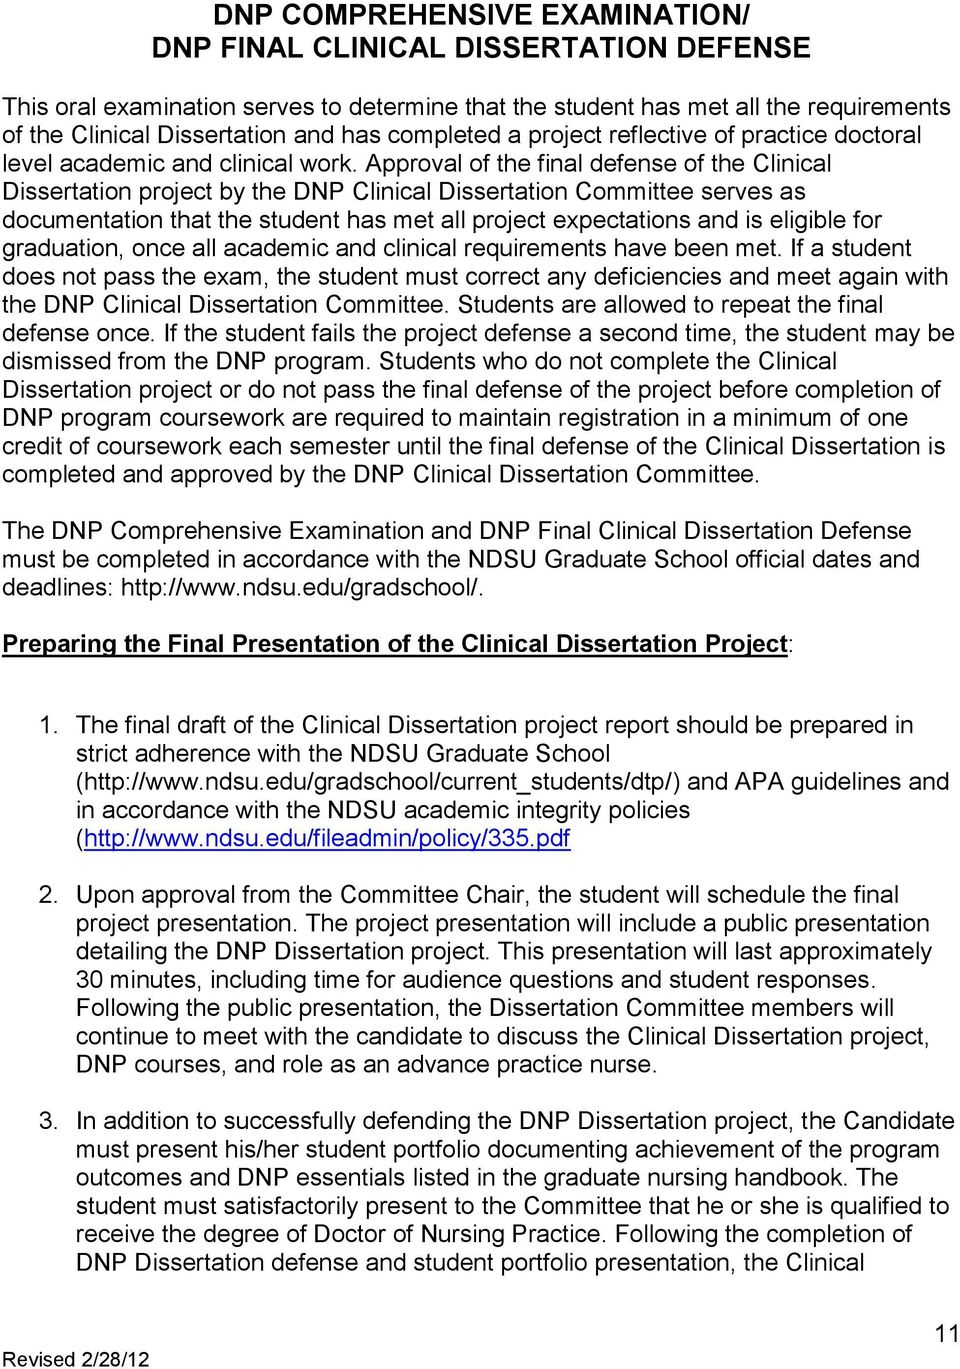 CLINICAL DISSERTATION GUIDELINES FOR NDSU DOCTOR OF NURSING